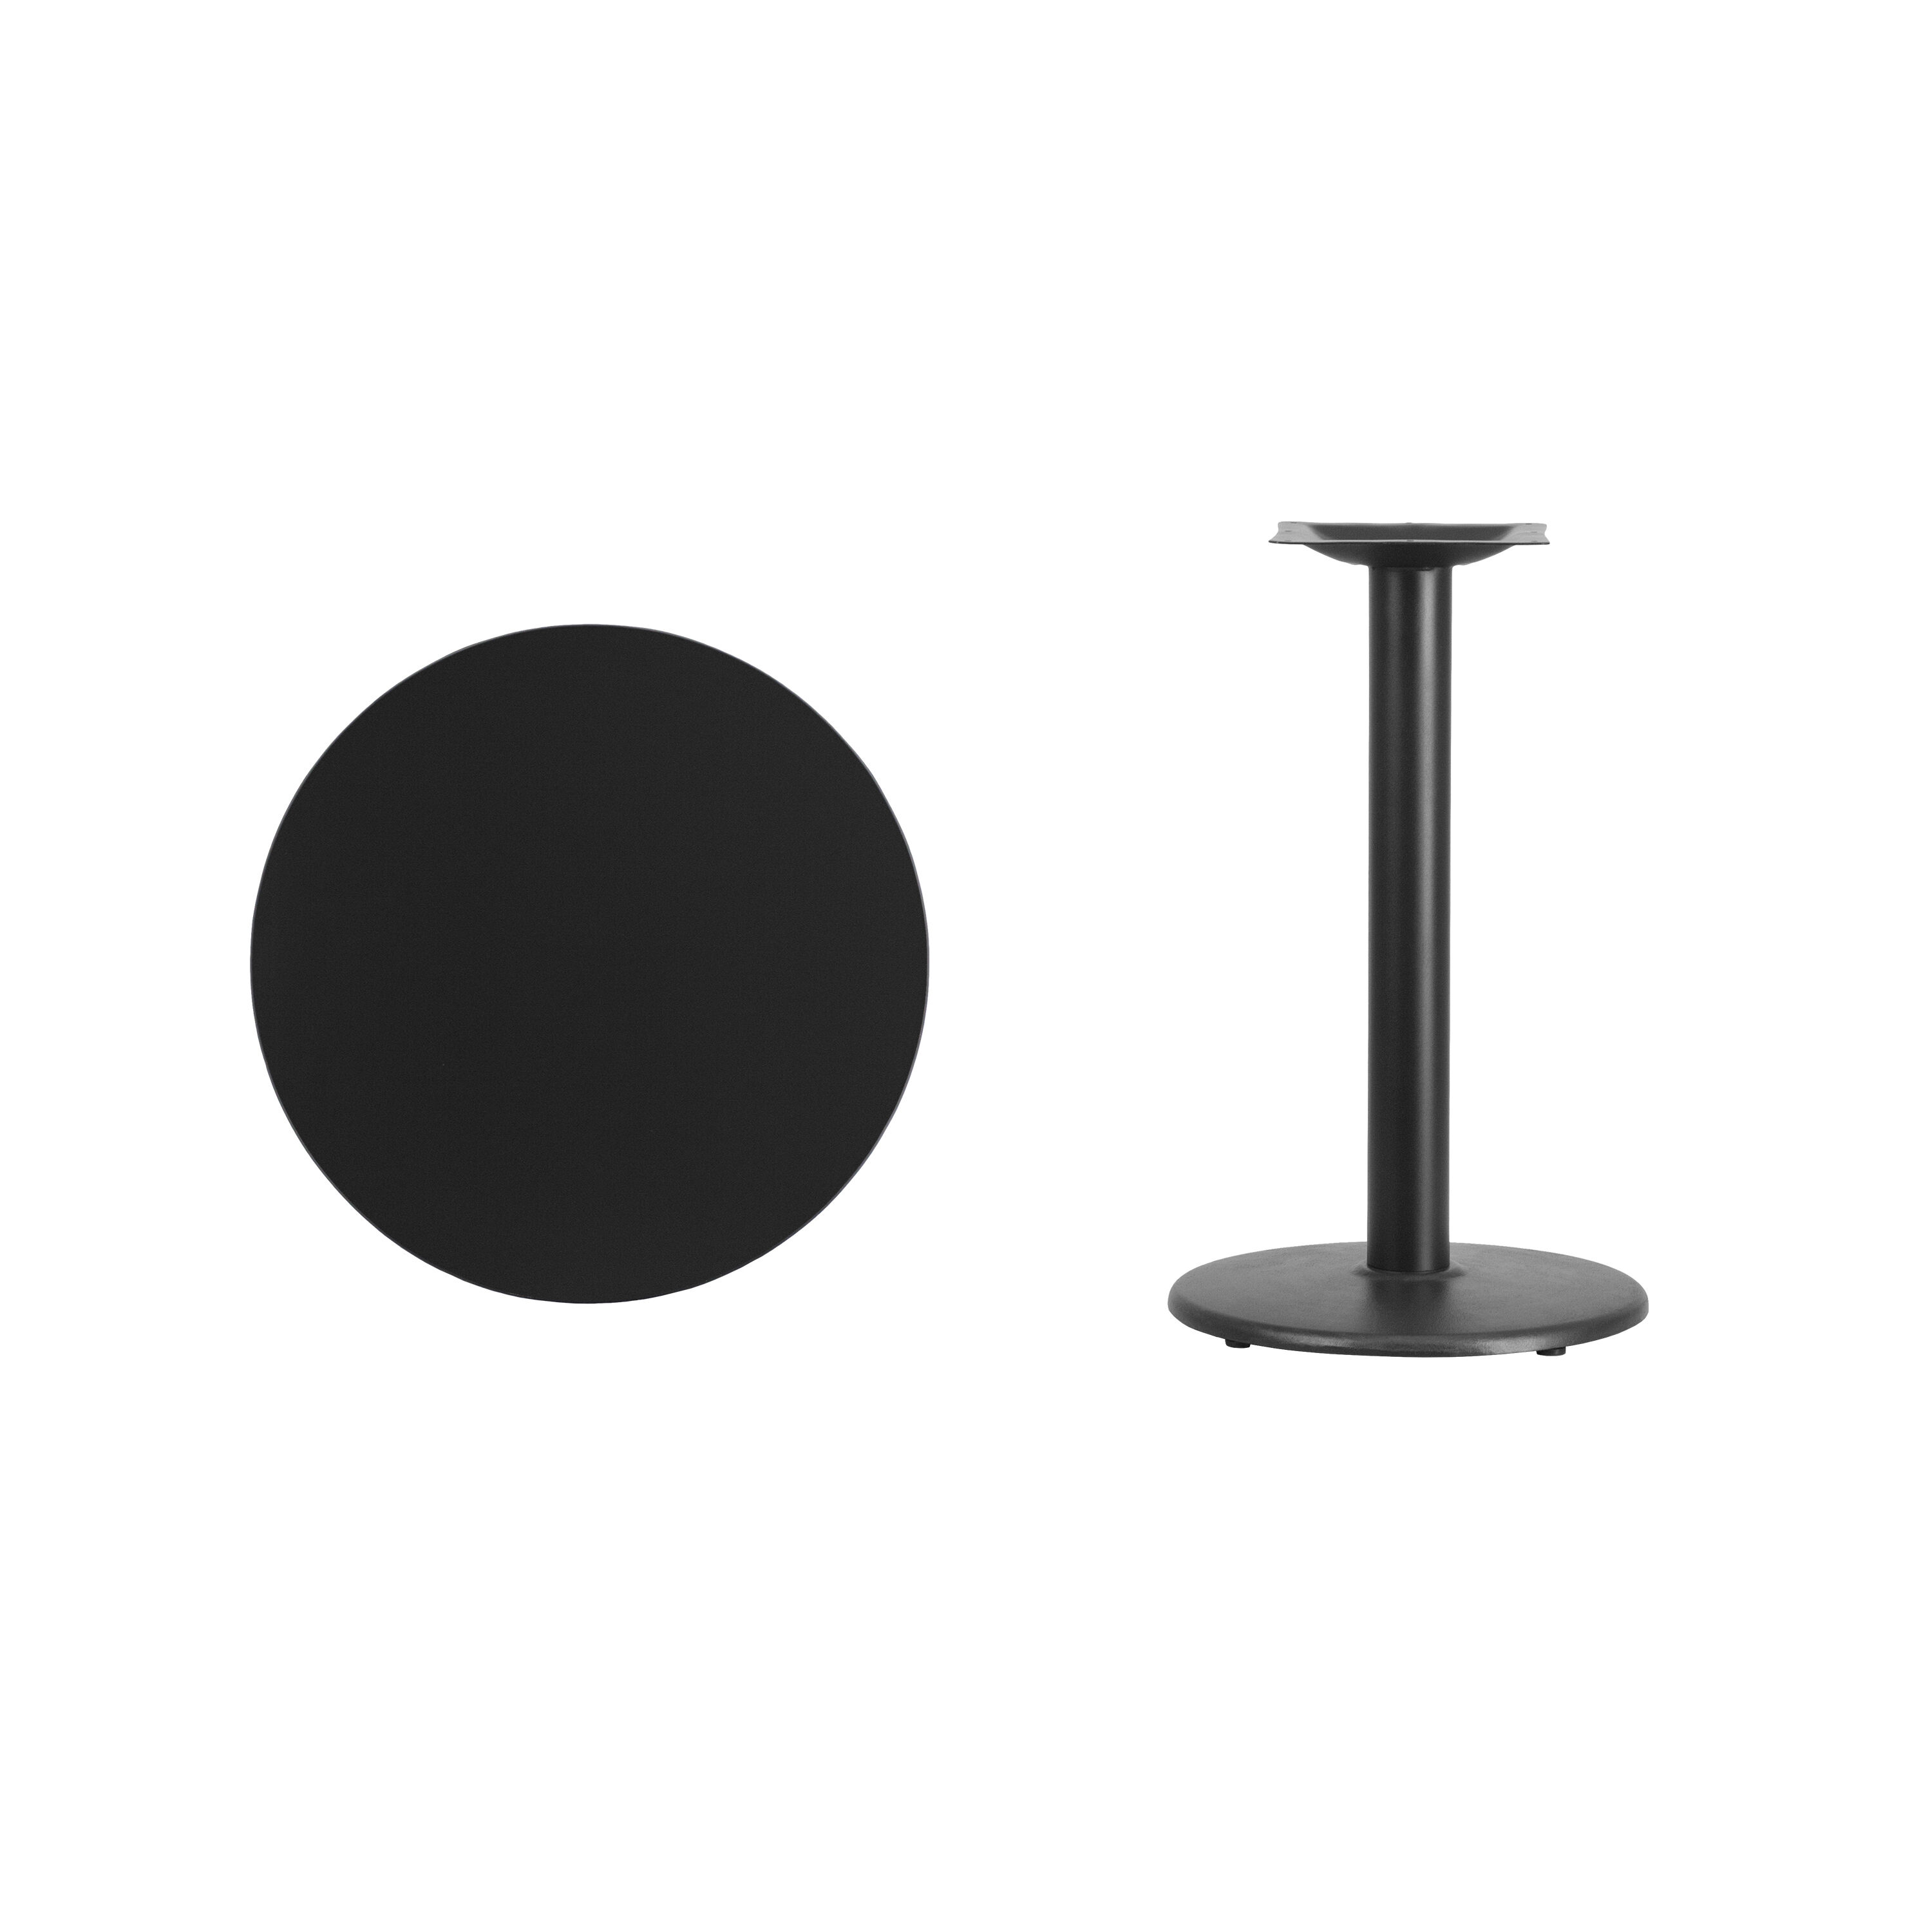 ... Our 24u0027u0027 Round Black Laminate Table Top With 18u0027u0027 Round Table Height